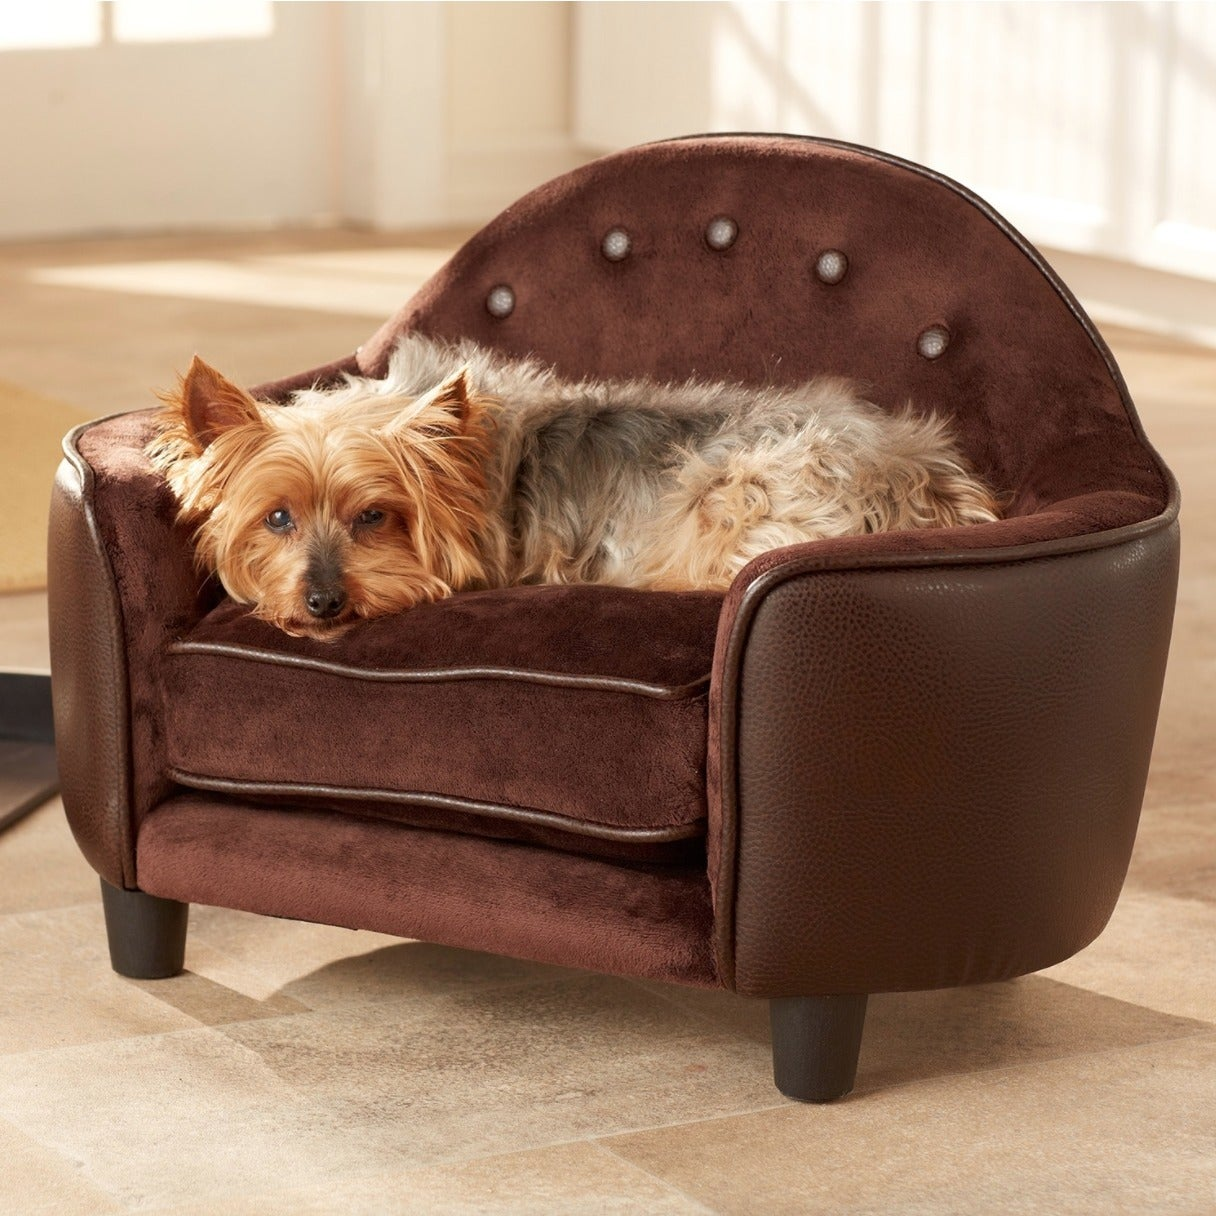 Enchanted Home Pet Ultra-plush Pet Couch Bed (Pebble Brown)